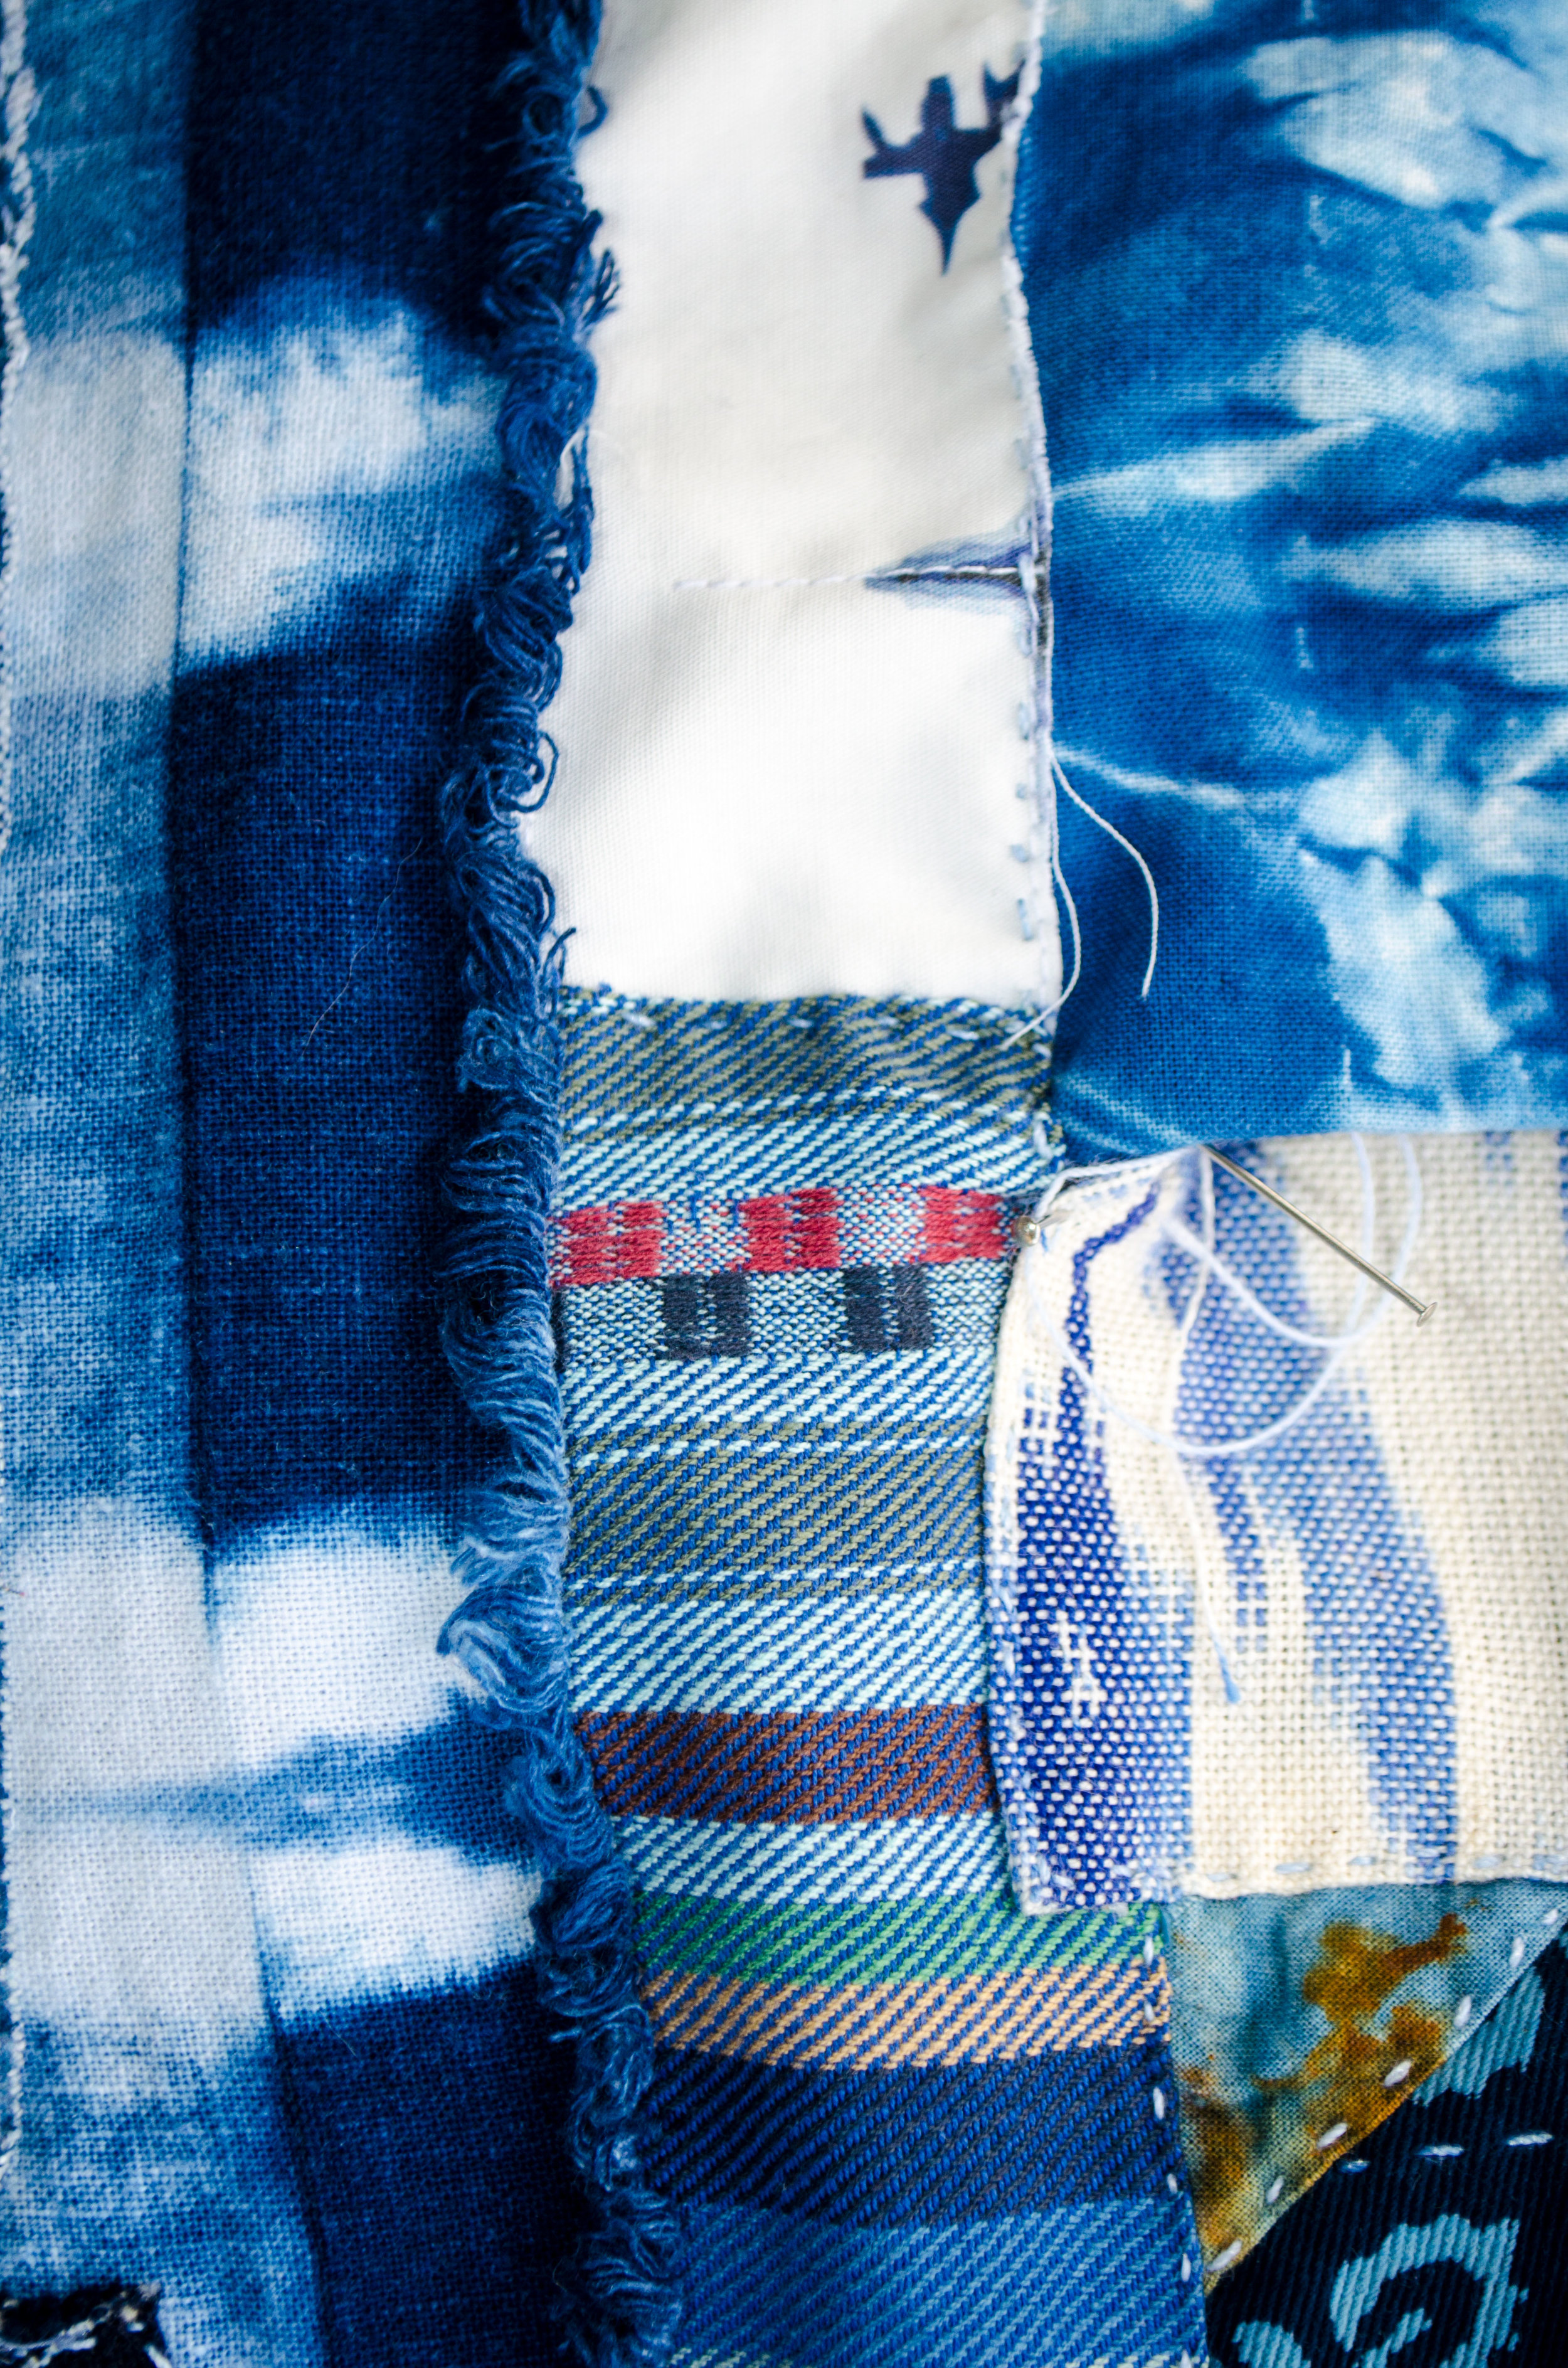 Rust dyed cotton mixed with ikat, shibori and hand loomed textiles